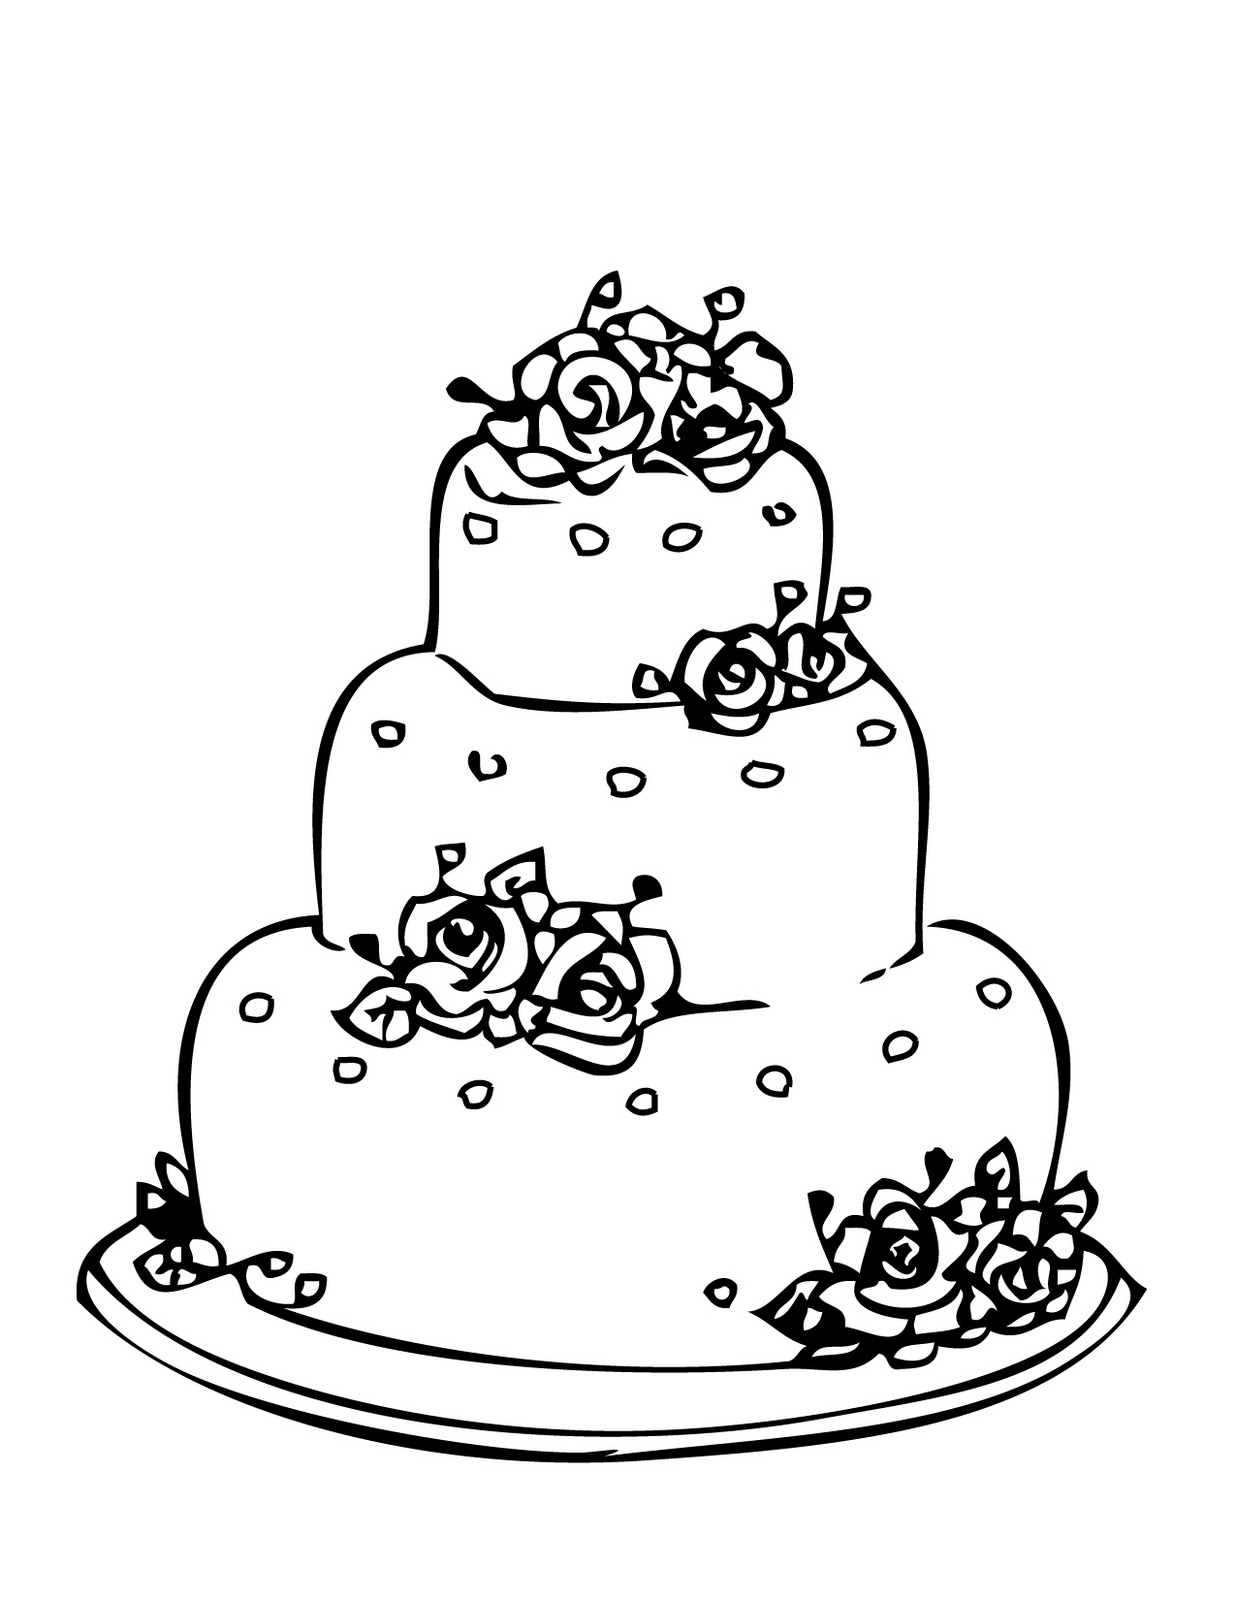 cake coloring pages - photo#15